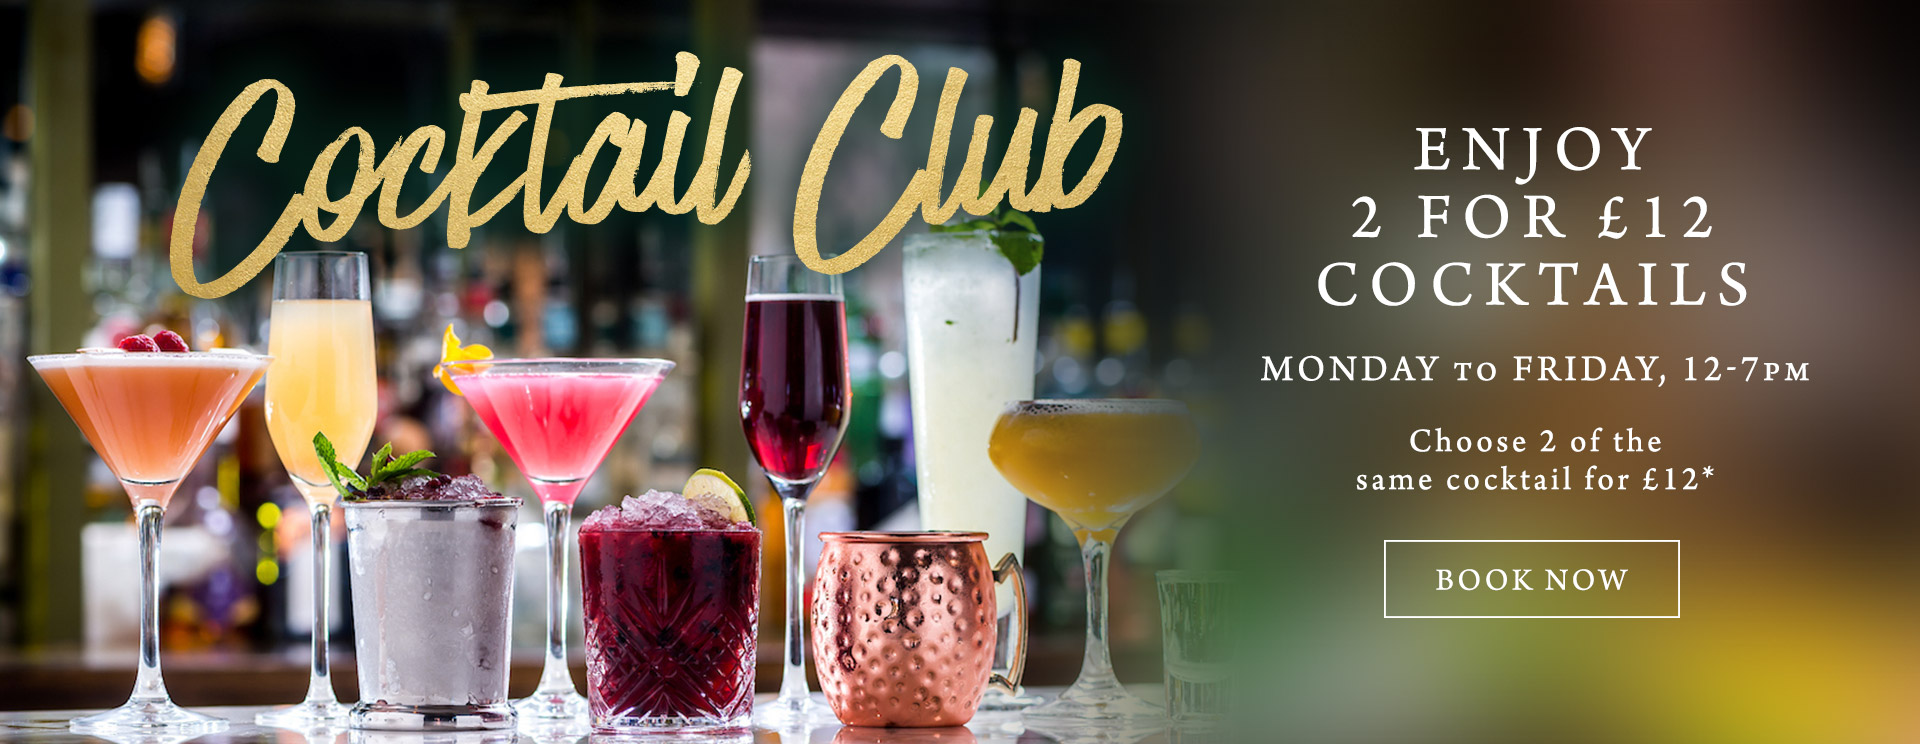 2 for £12 cocktails at One Kew Road